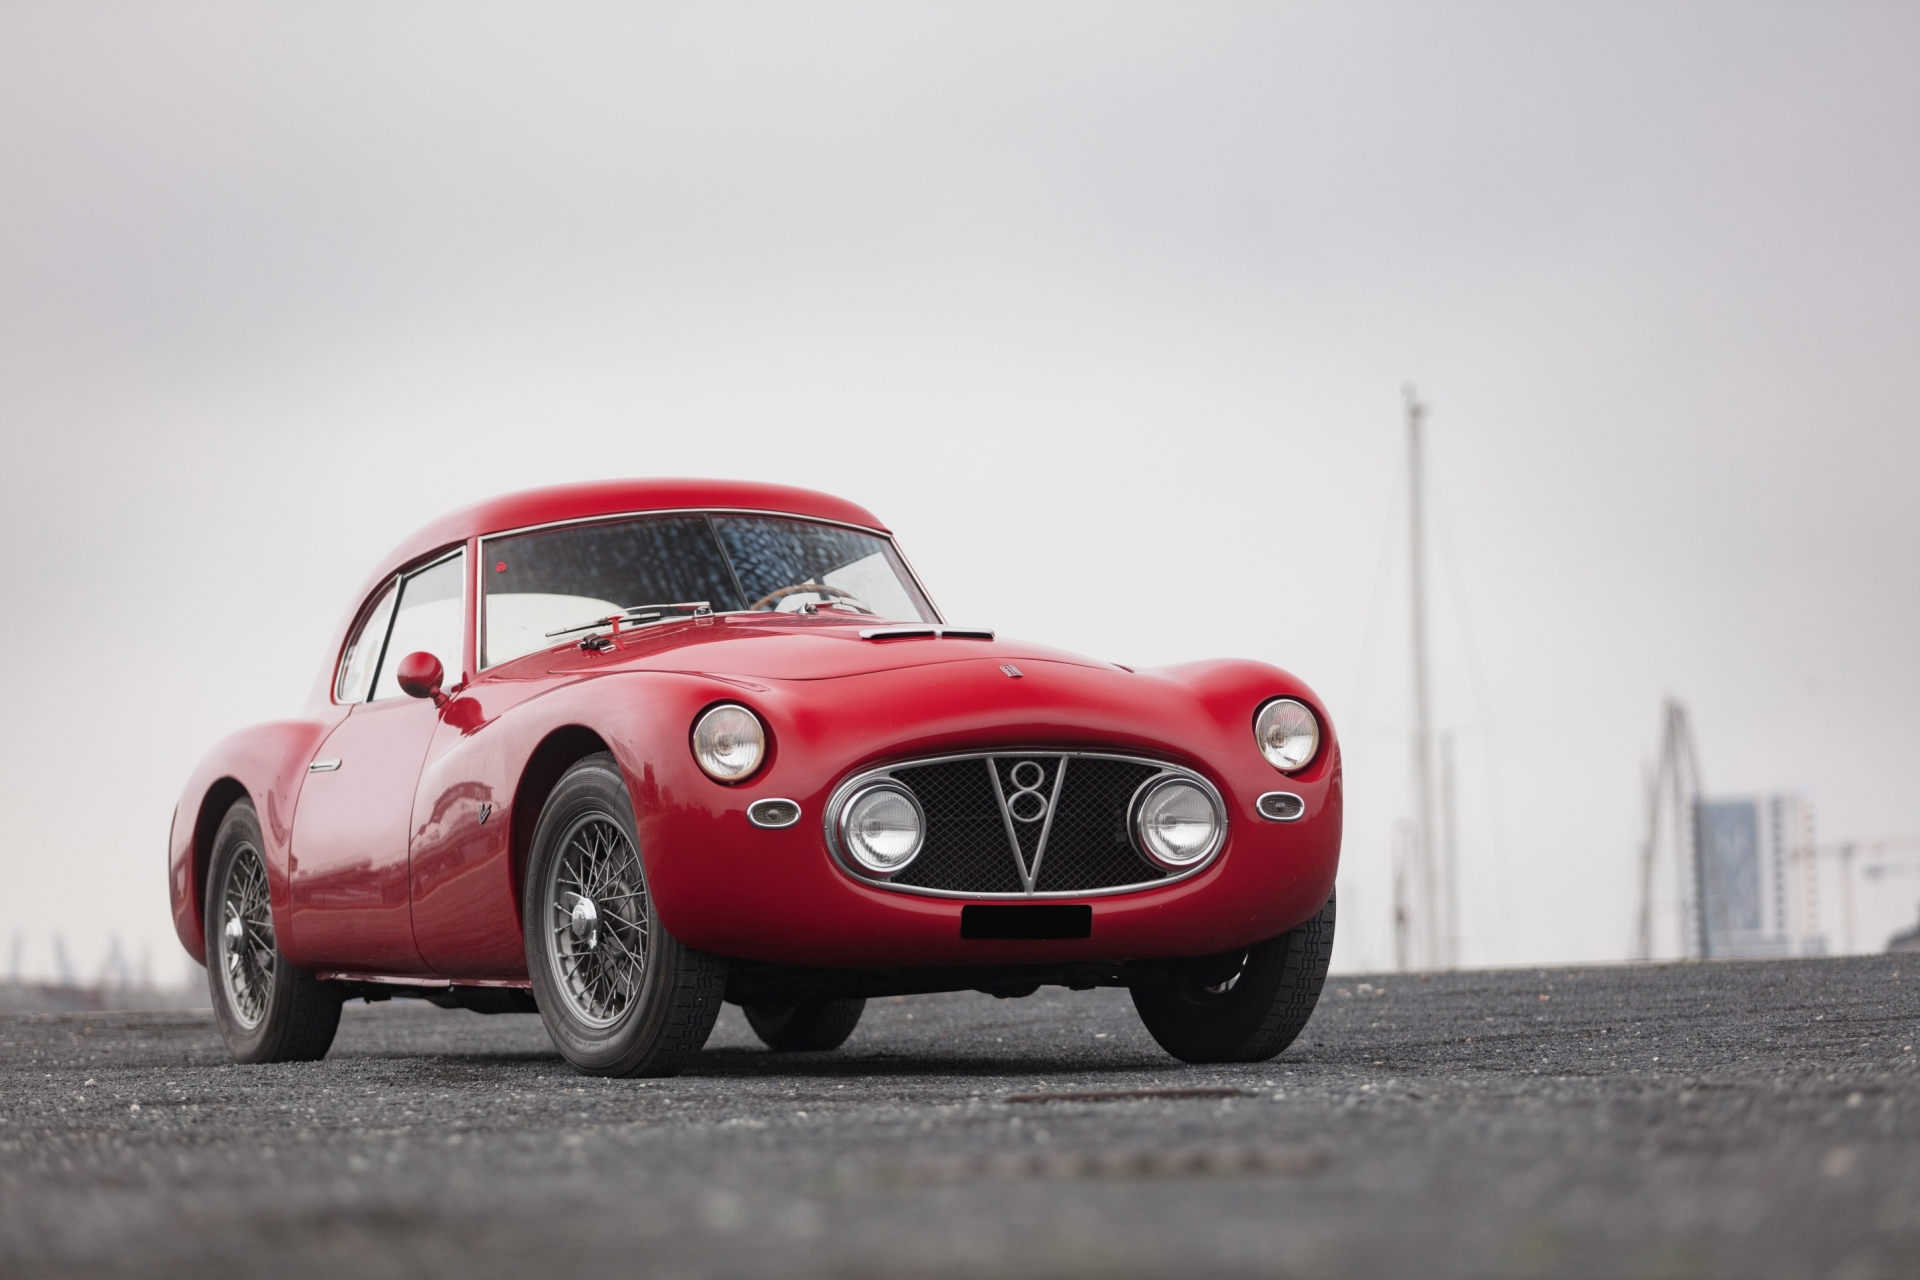 Vintage Italian supercars steal the show at upcoming Paris auction